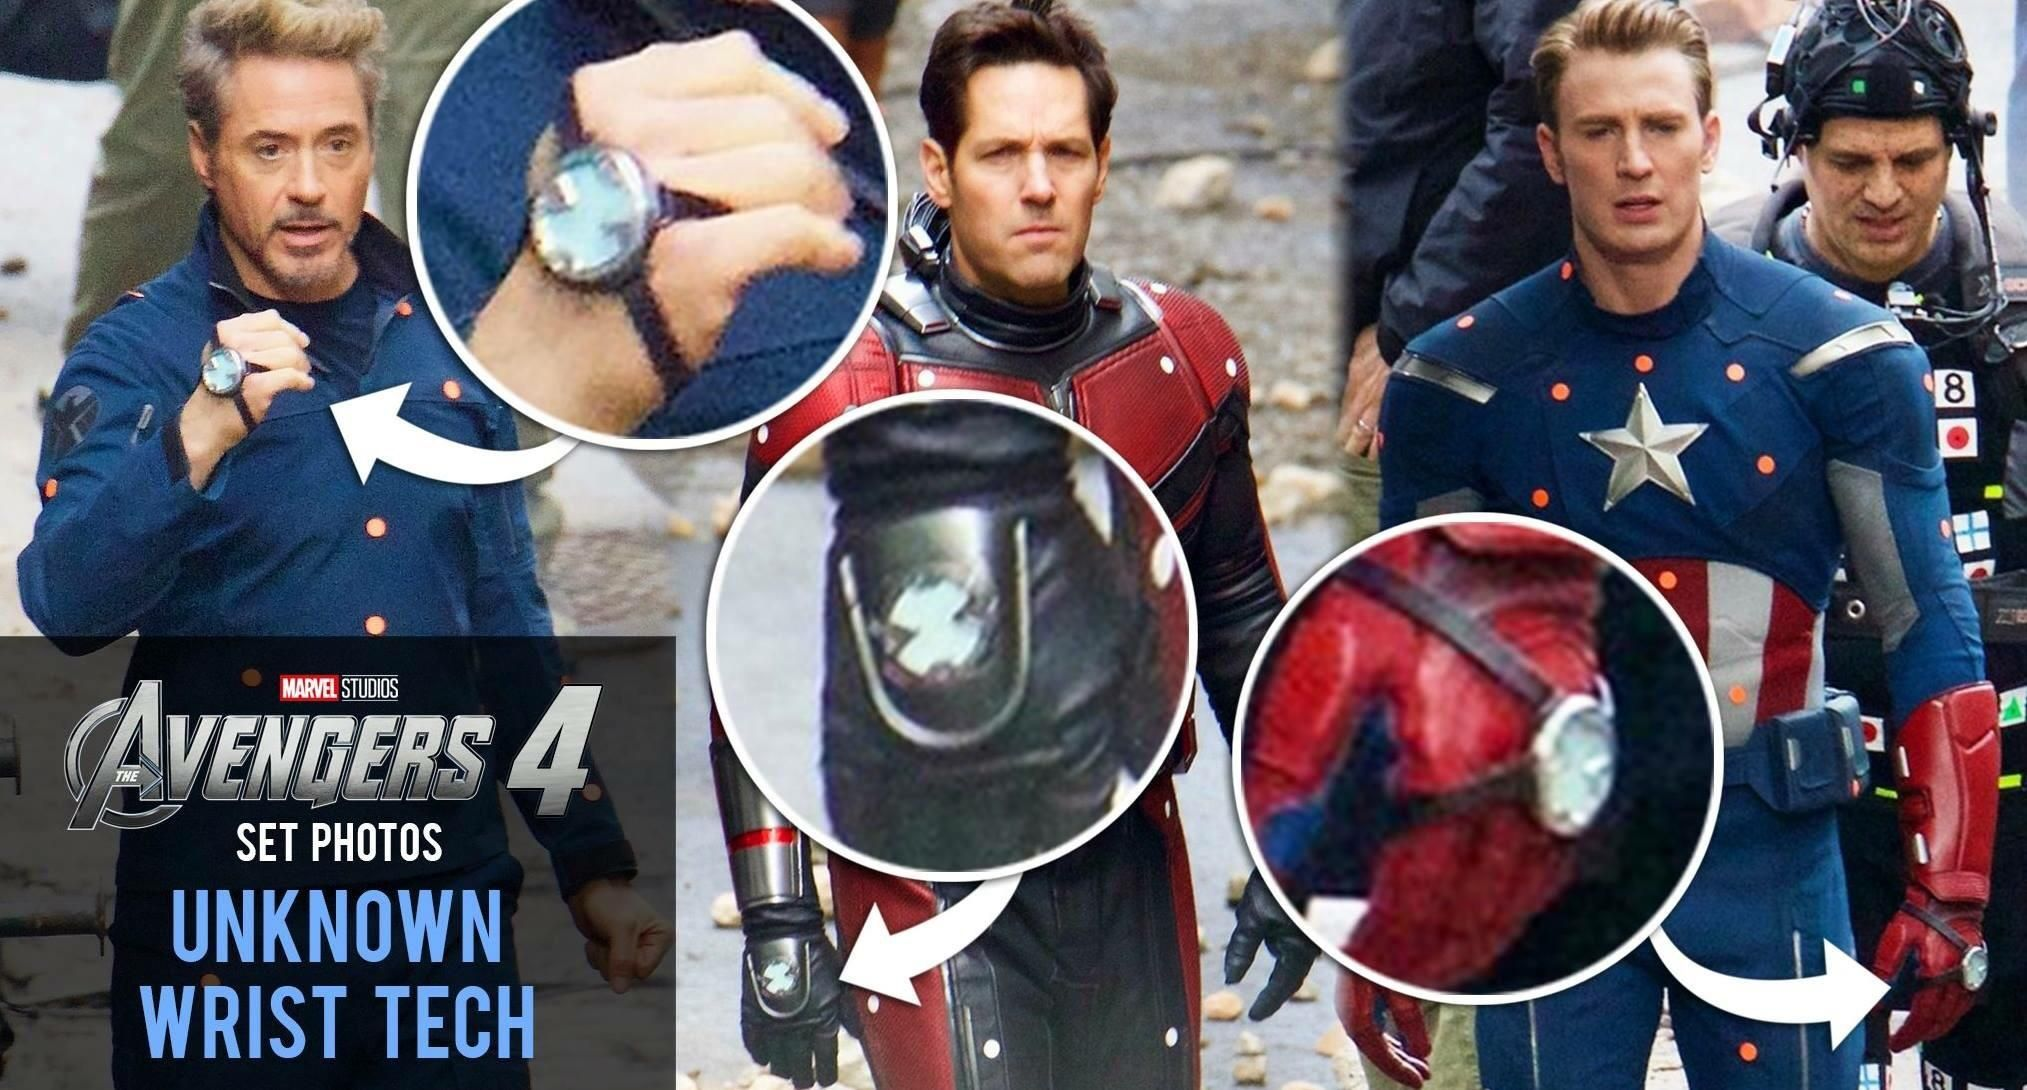 must see avengers: endgame on set pictures, theories, cast #ironman